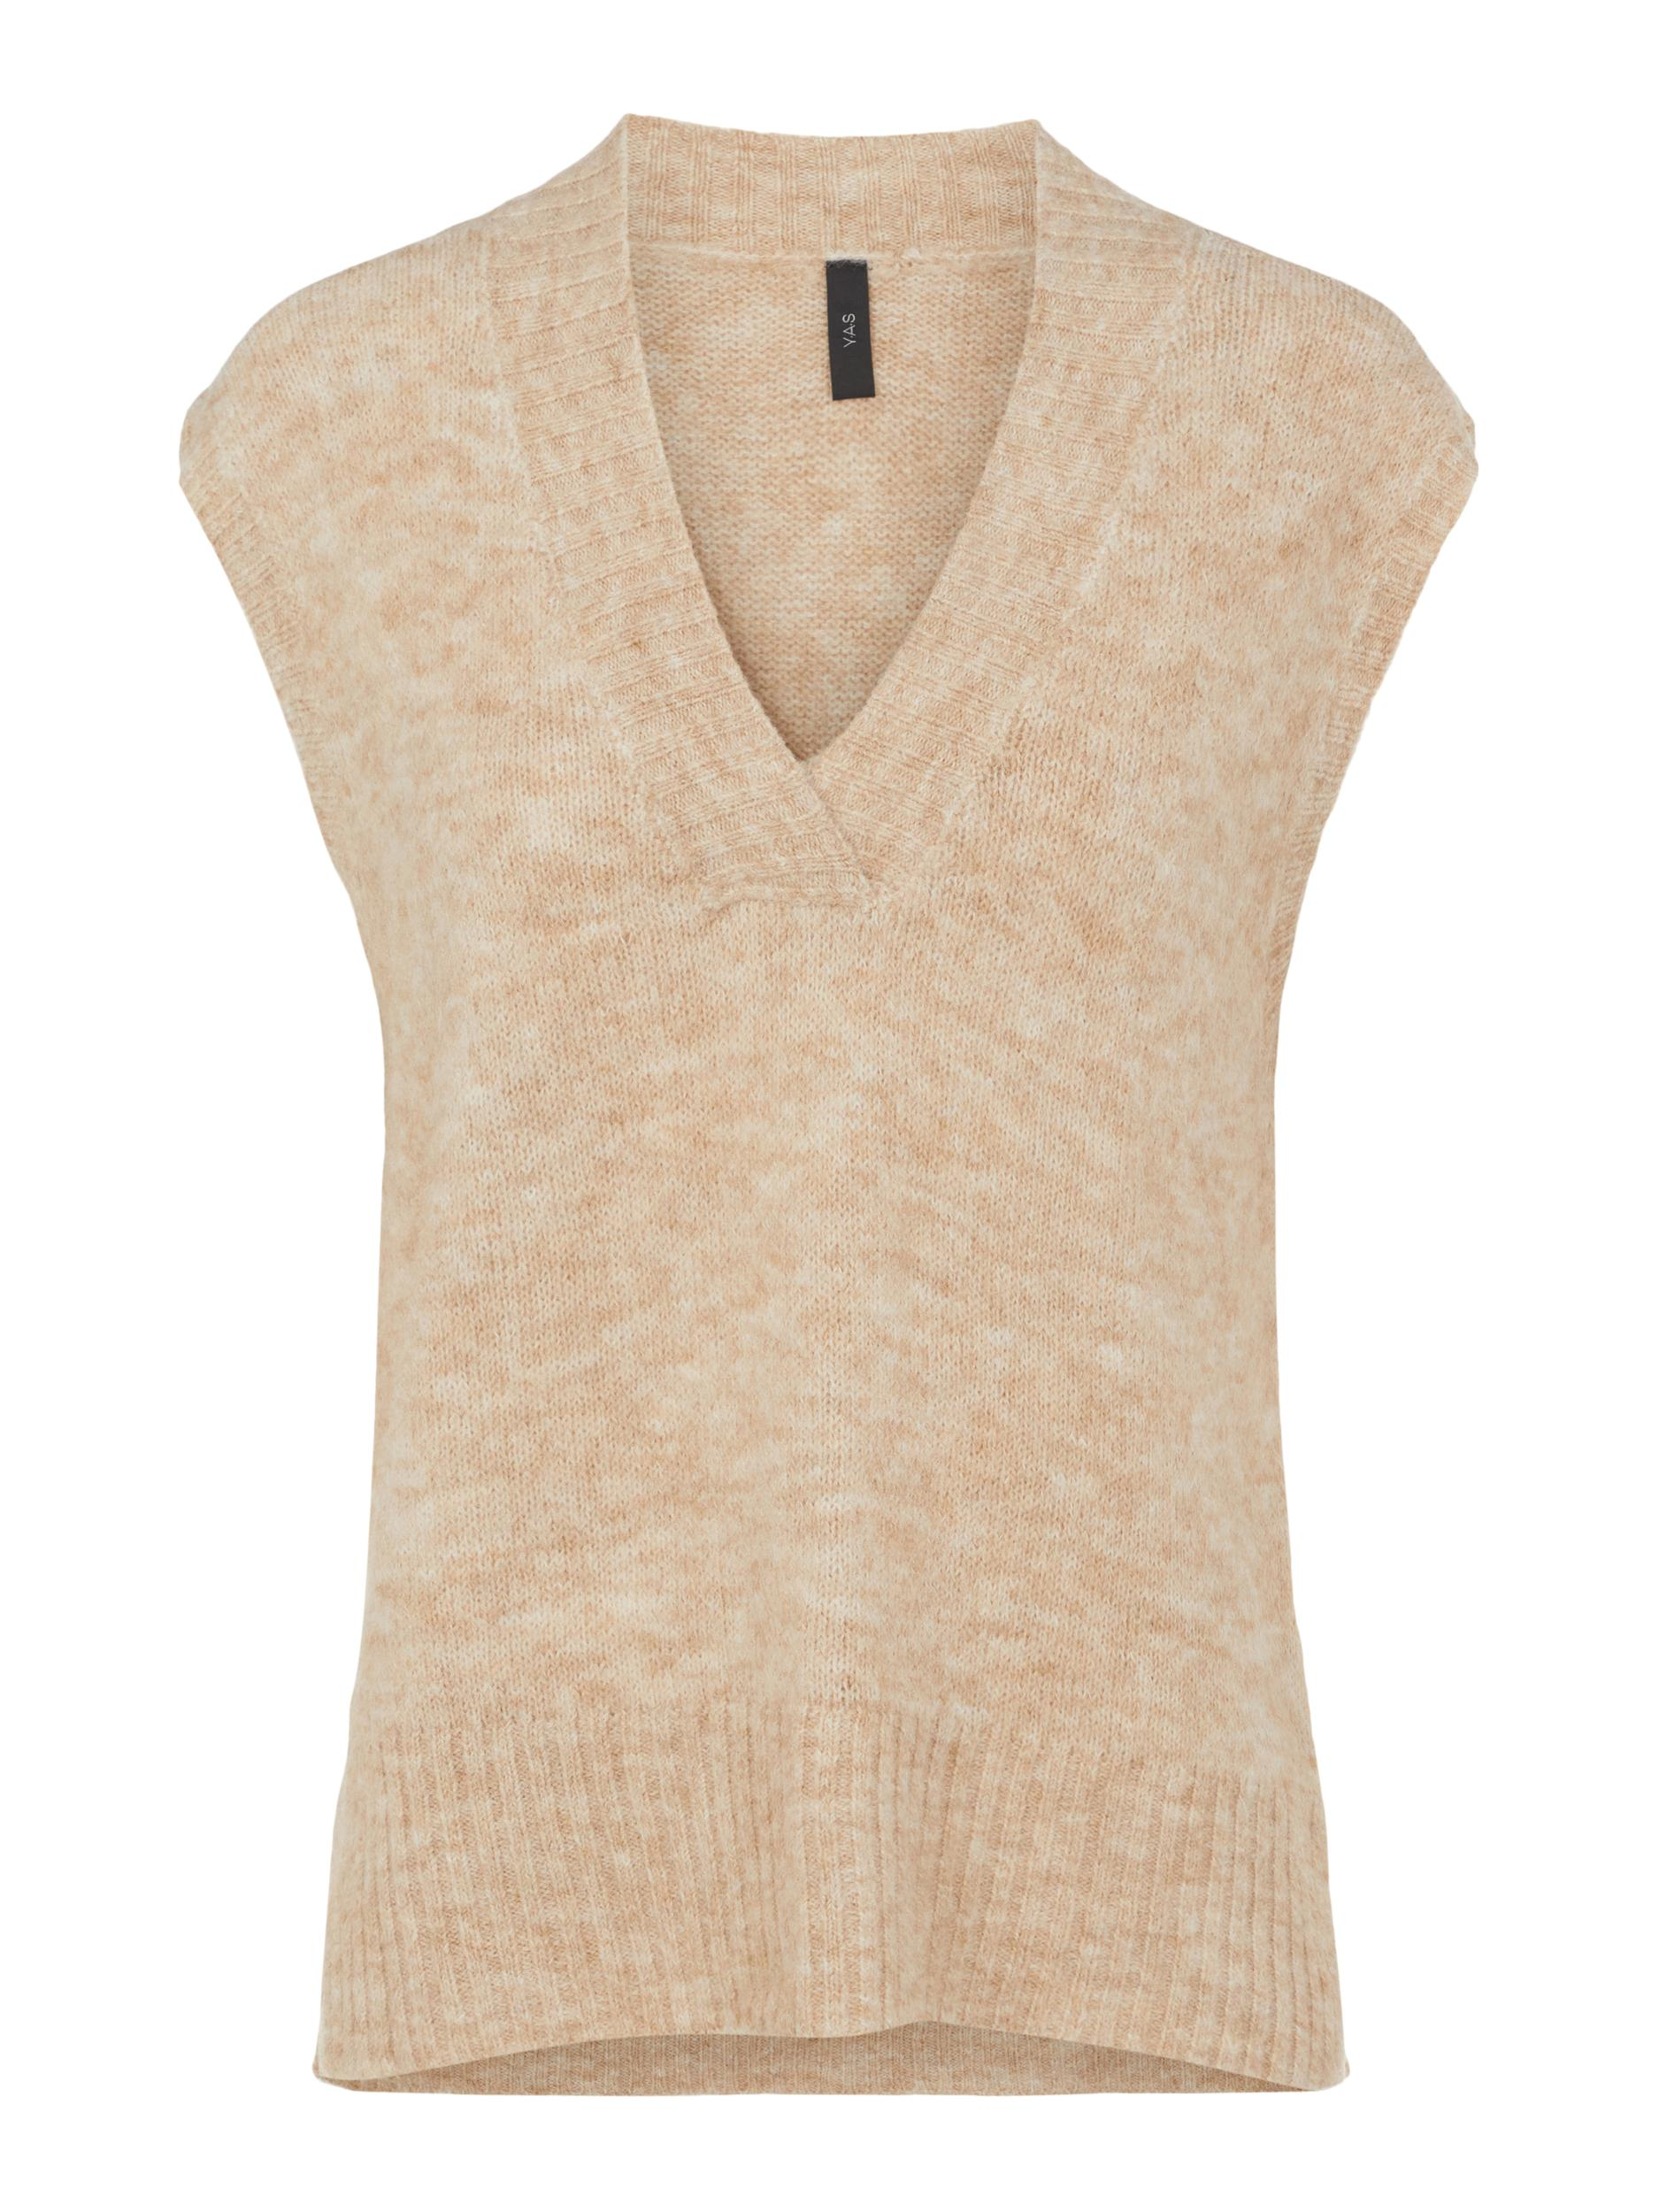 Y.A.S Apple strikvest, tawny bown, small